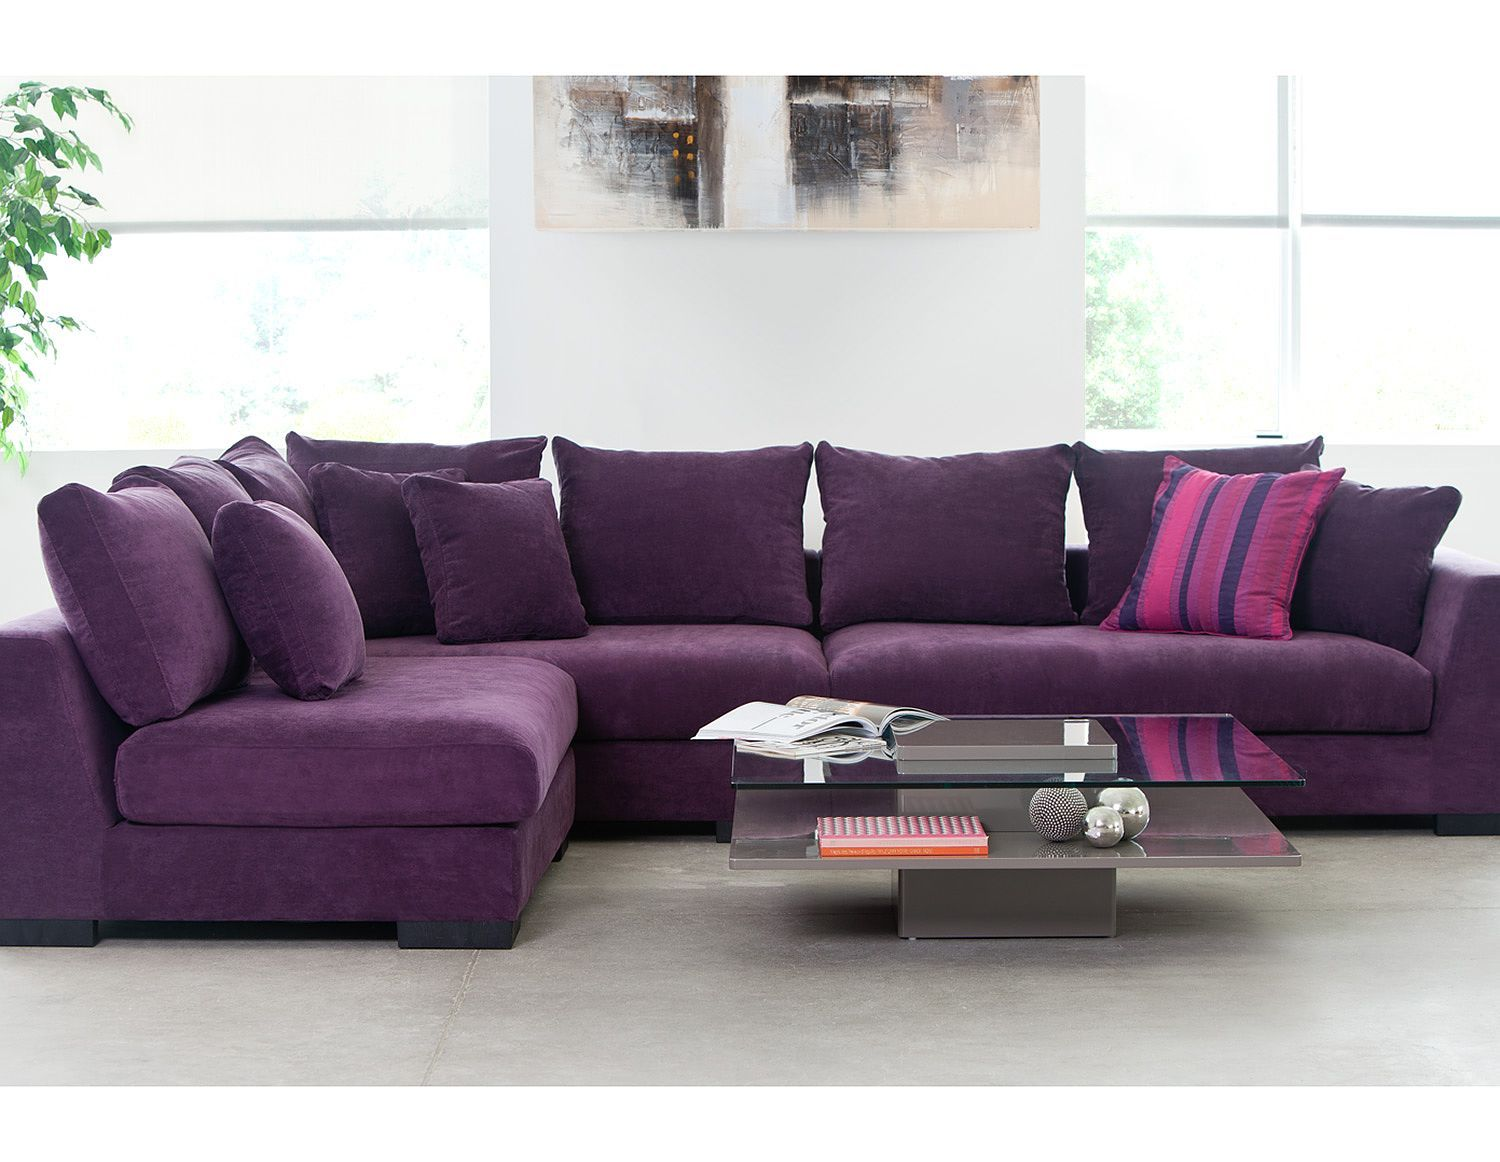 Living room sectional sofas cooper purple faints a for Colorful living room furniture